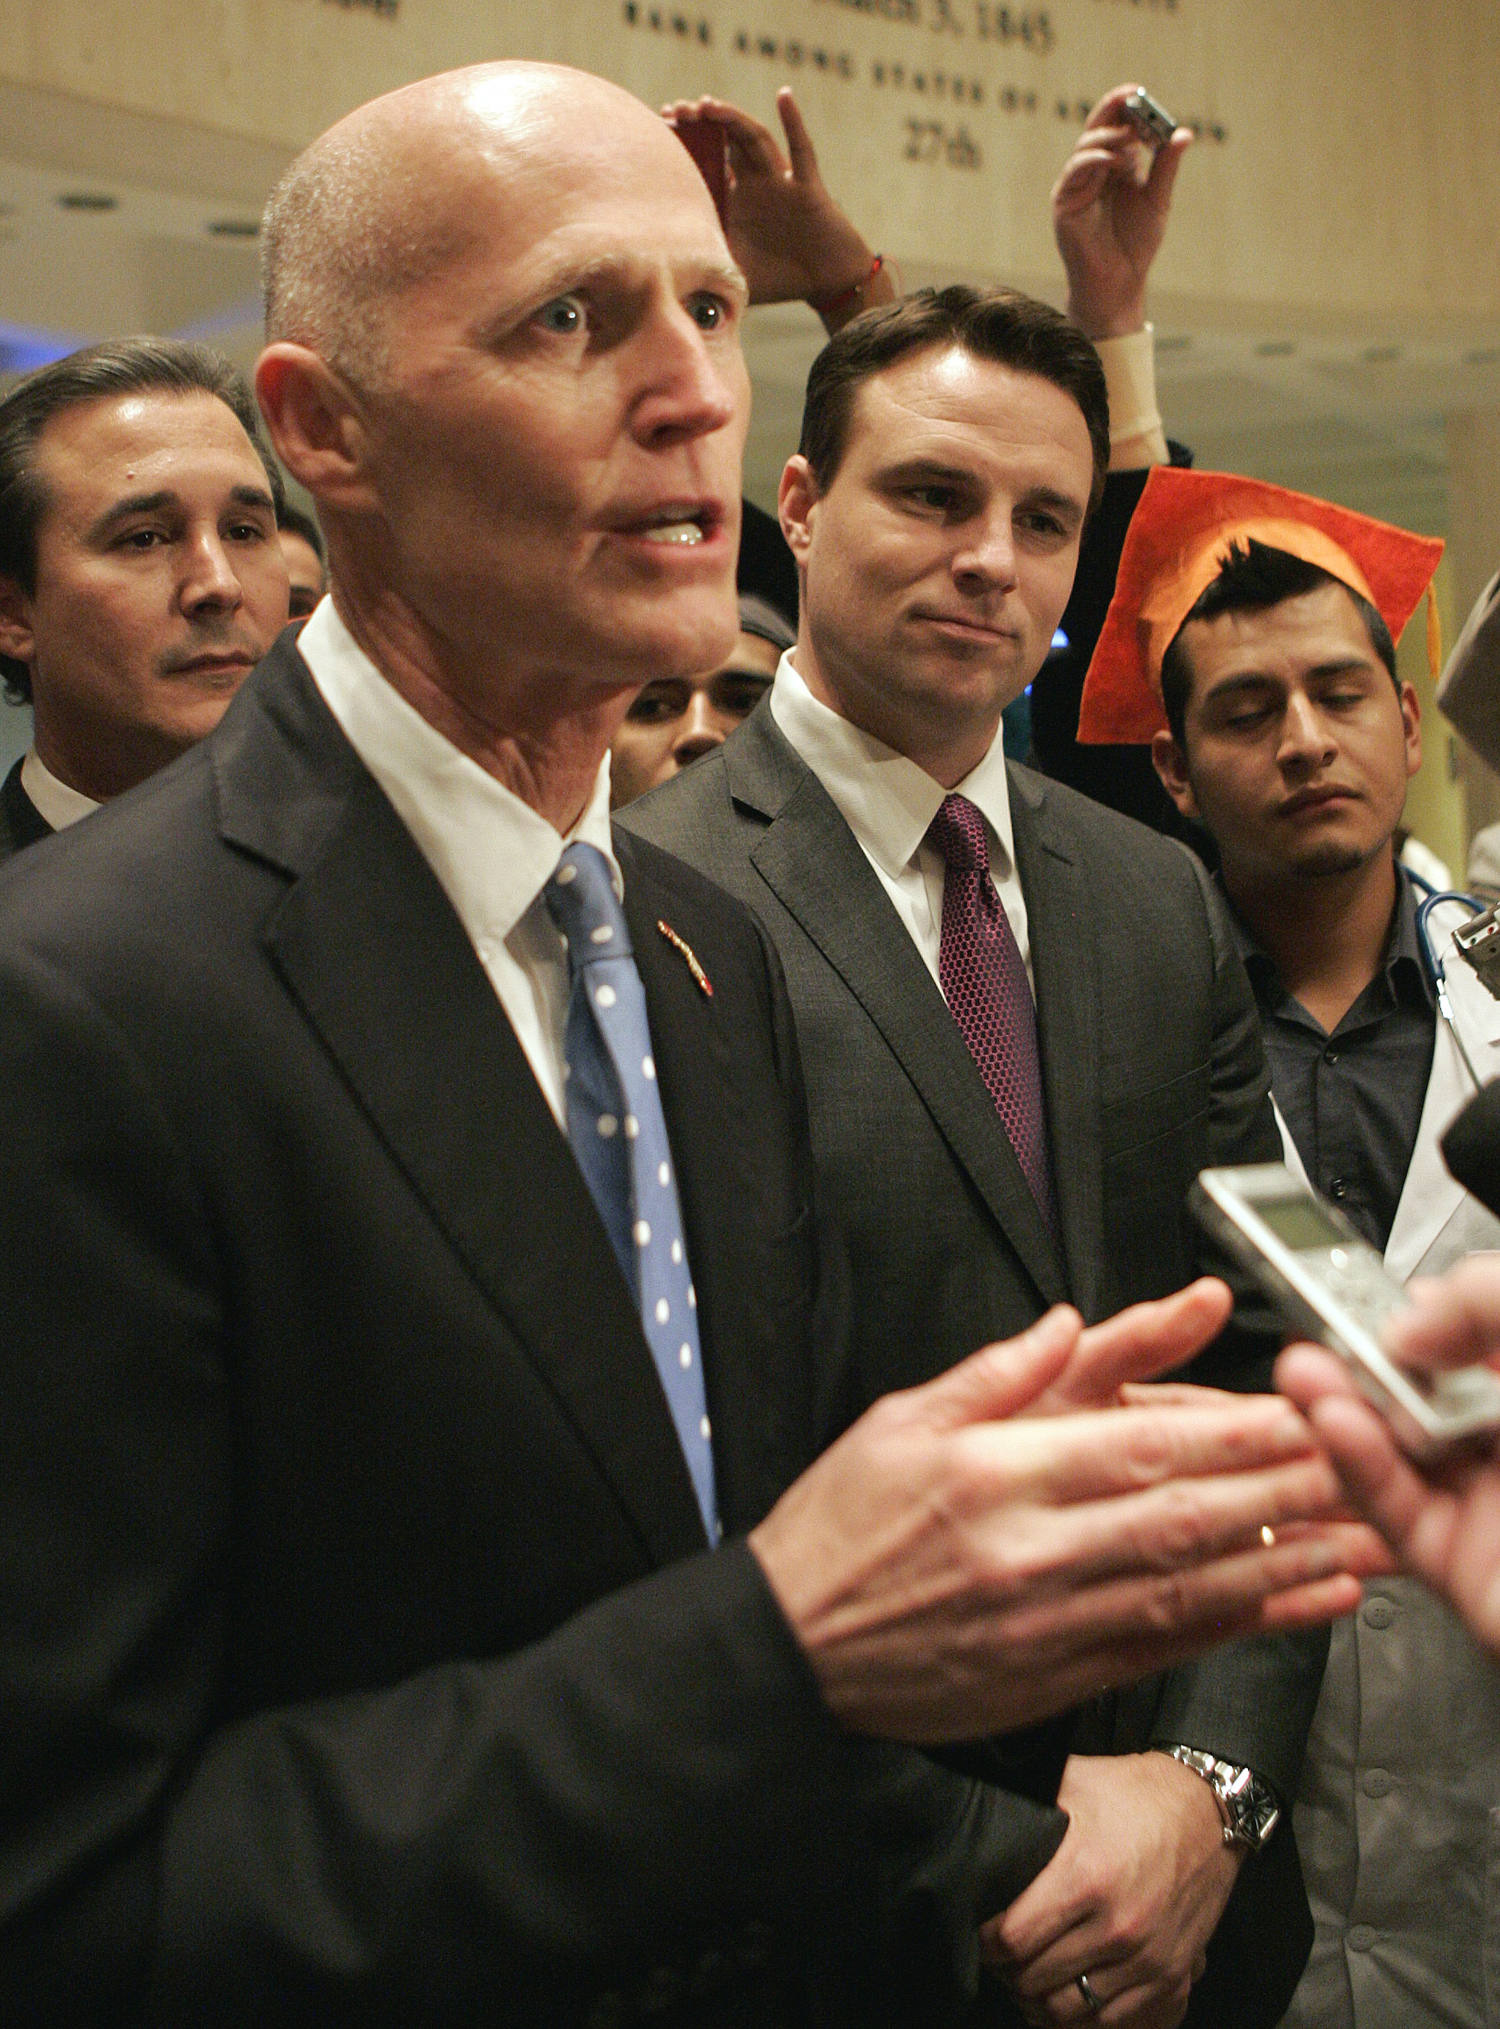 Gov. Rick Scott, left, and house speaker Will Weatherford speak at a news conference after session on Thursday, May 1, 2014, in Tallahassee, Fla.